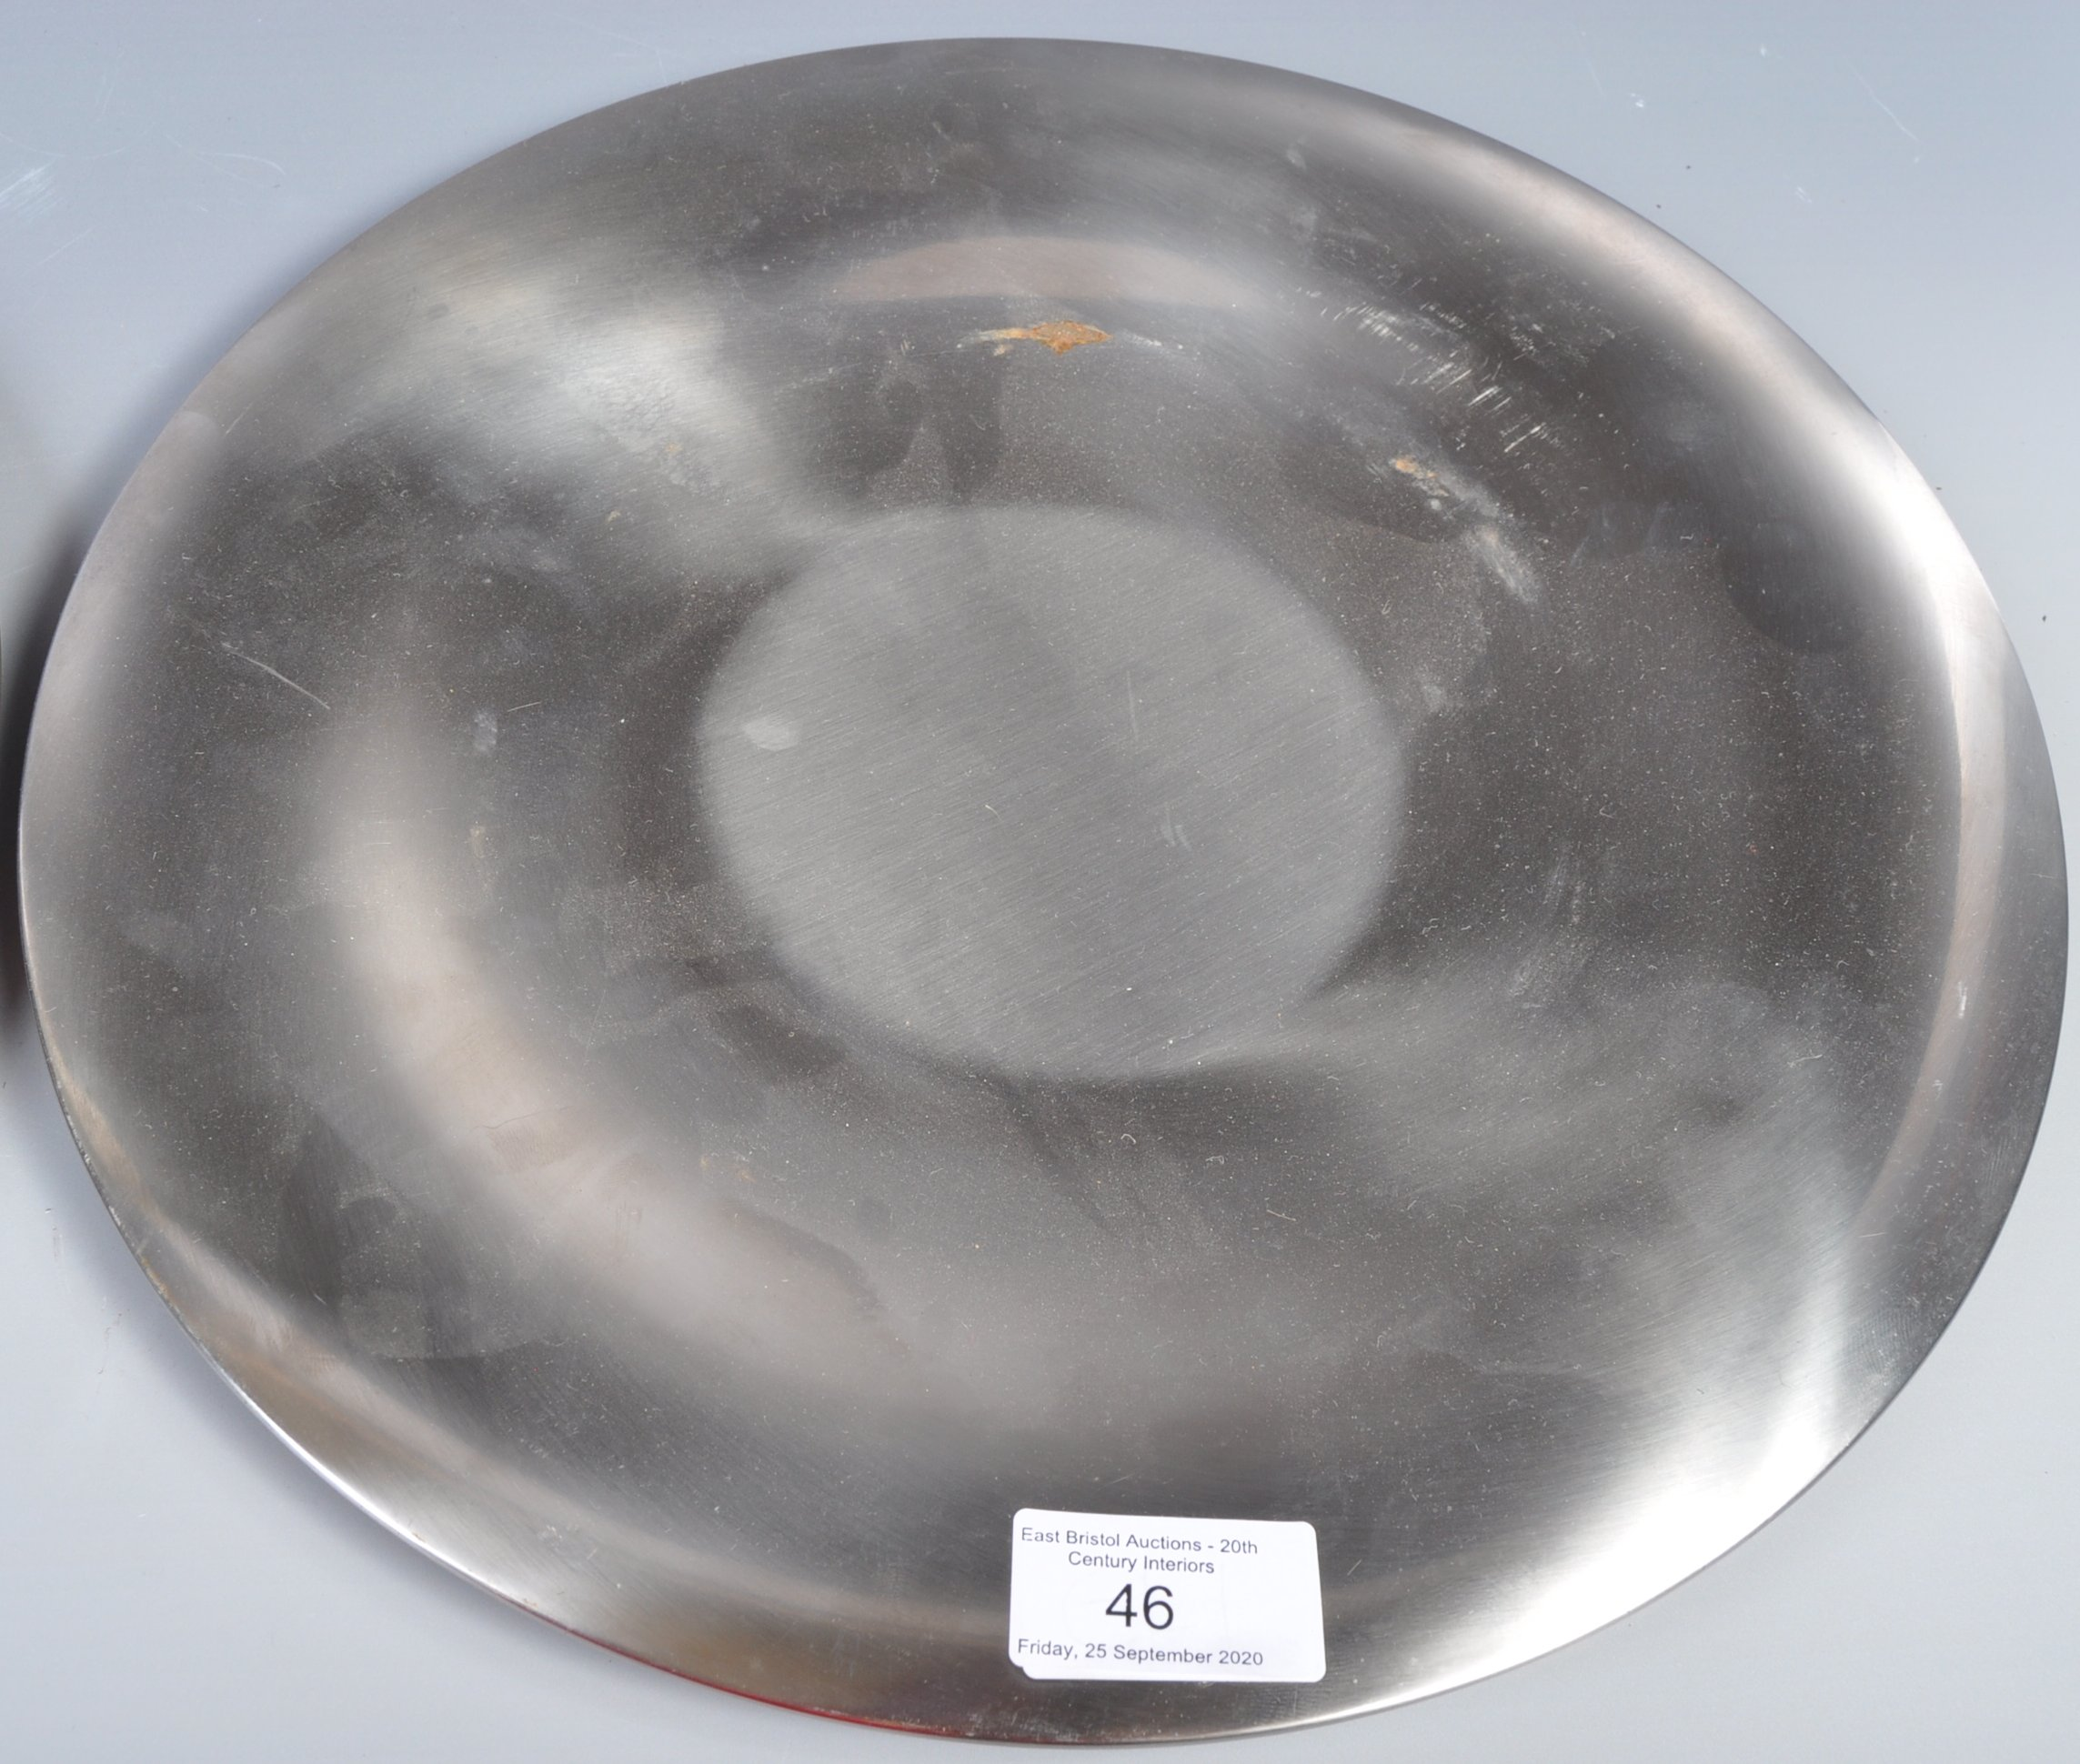 PAIR OF DANISH STAINLESS STEEL PLATES BY LONE SACHS FOR LUNDTOFTE - Image 3 of 8